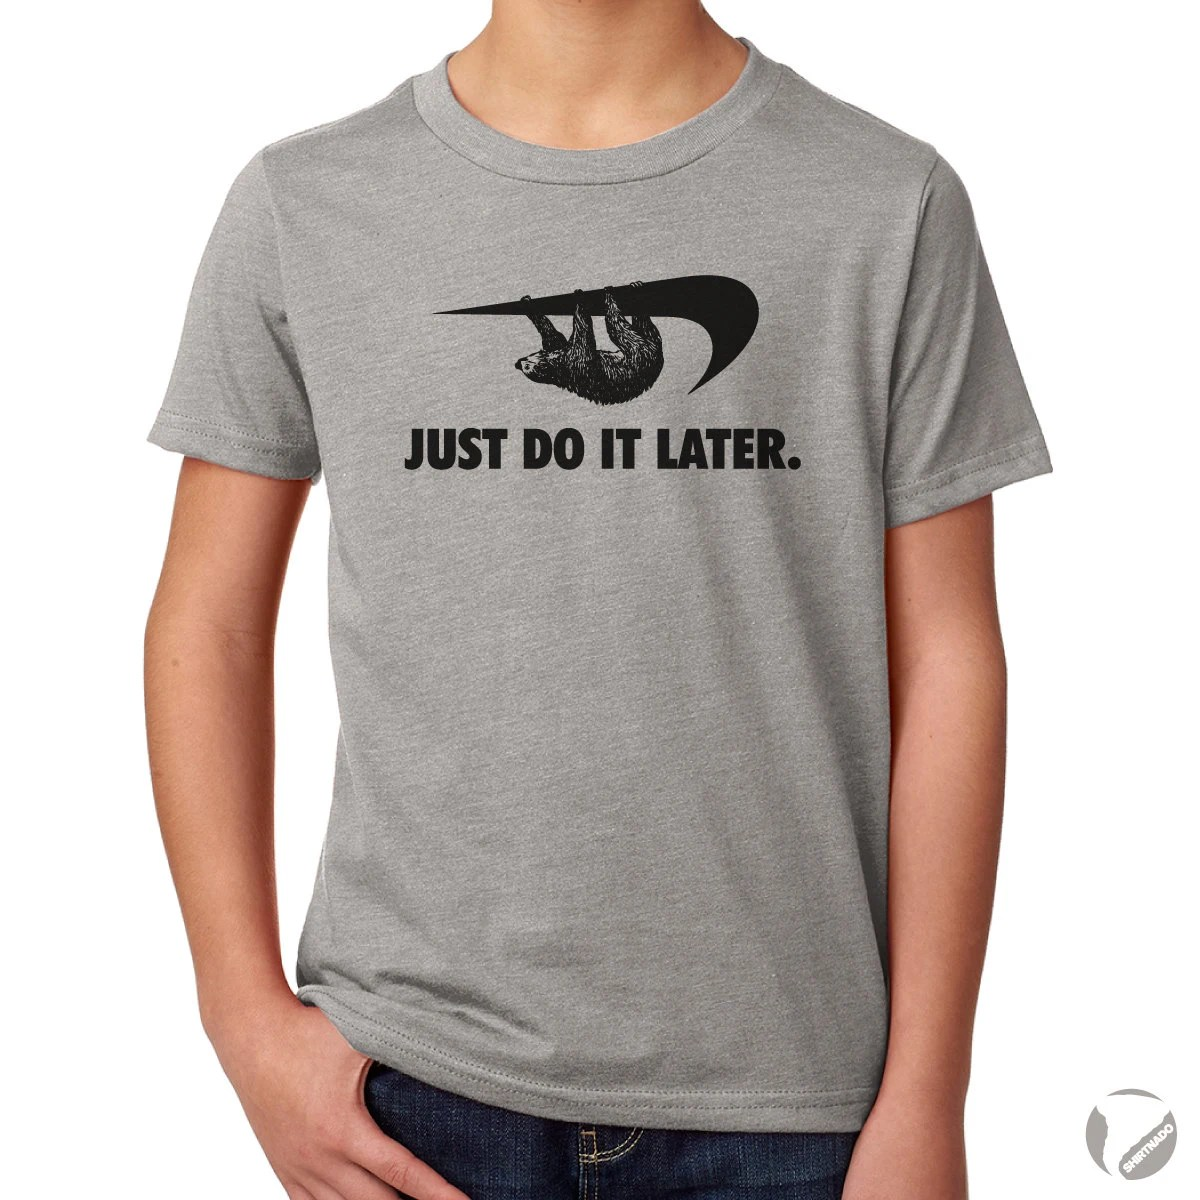 35c97f51 Just Do It Later | Just Do It Later Wandtattoo Wandtattoos